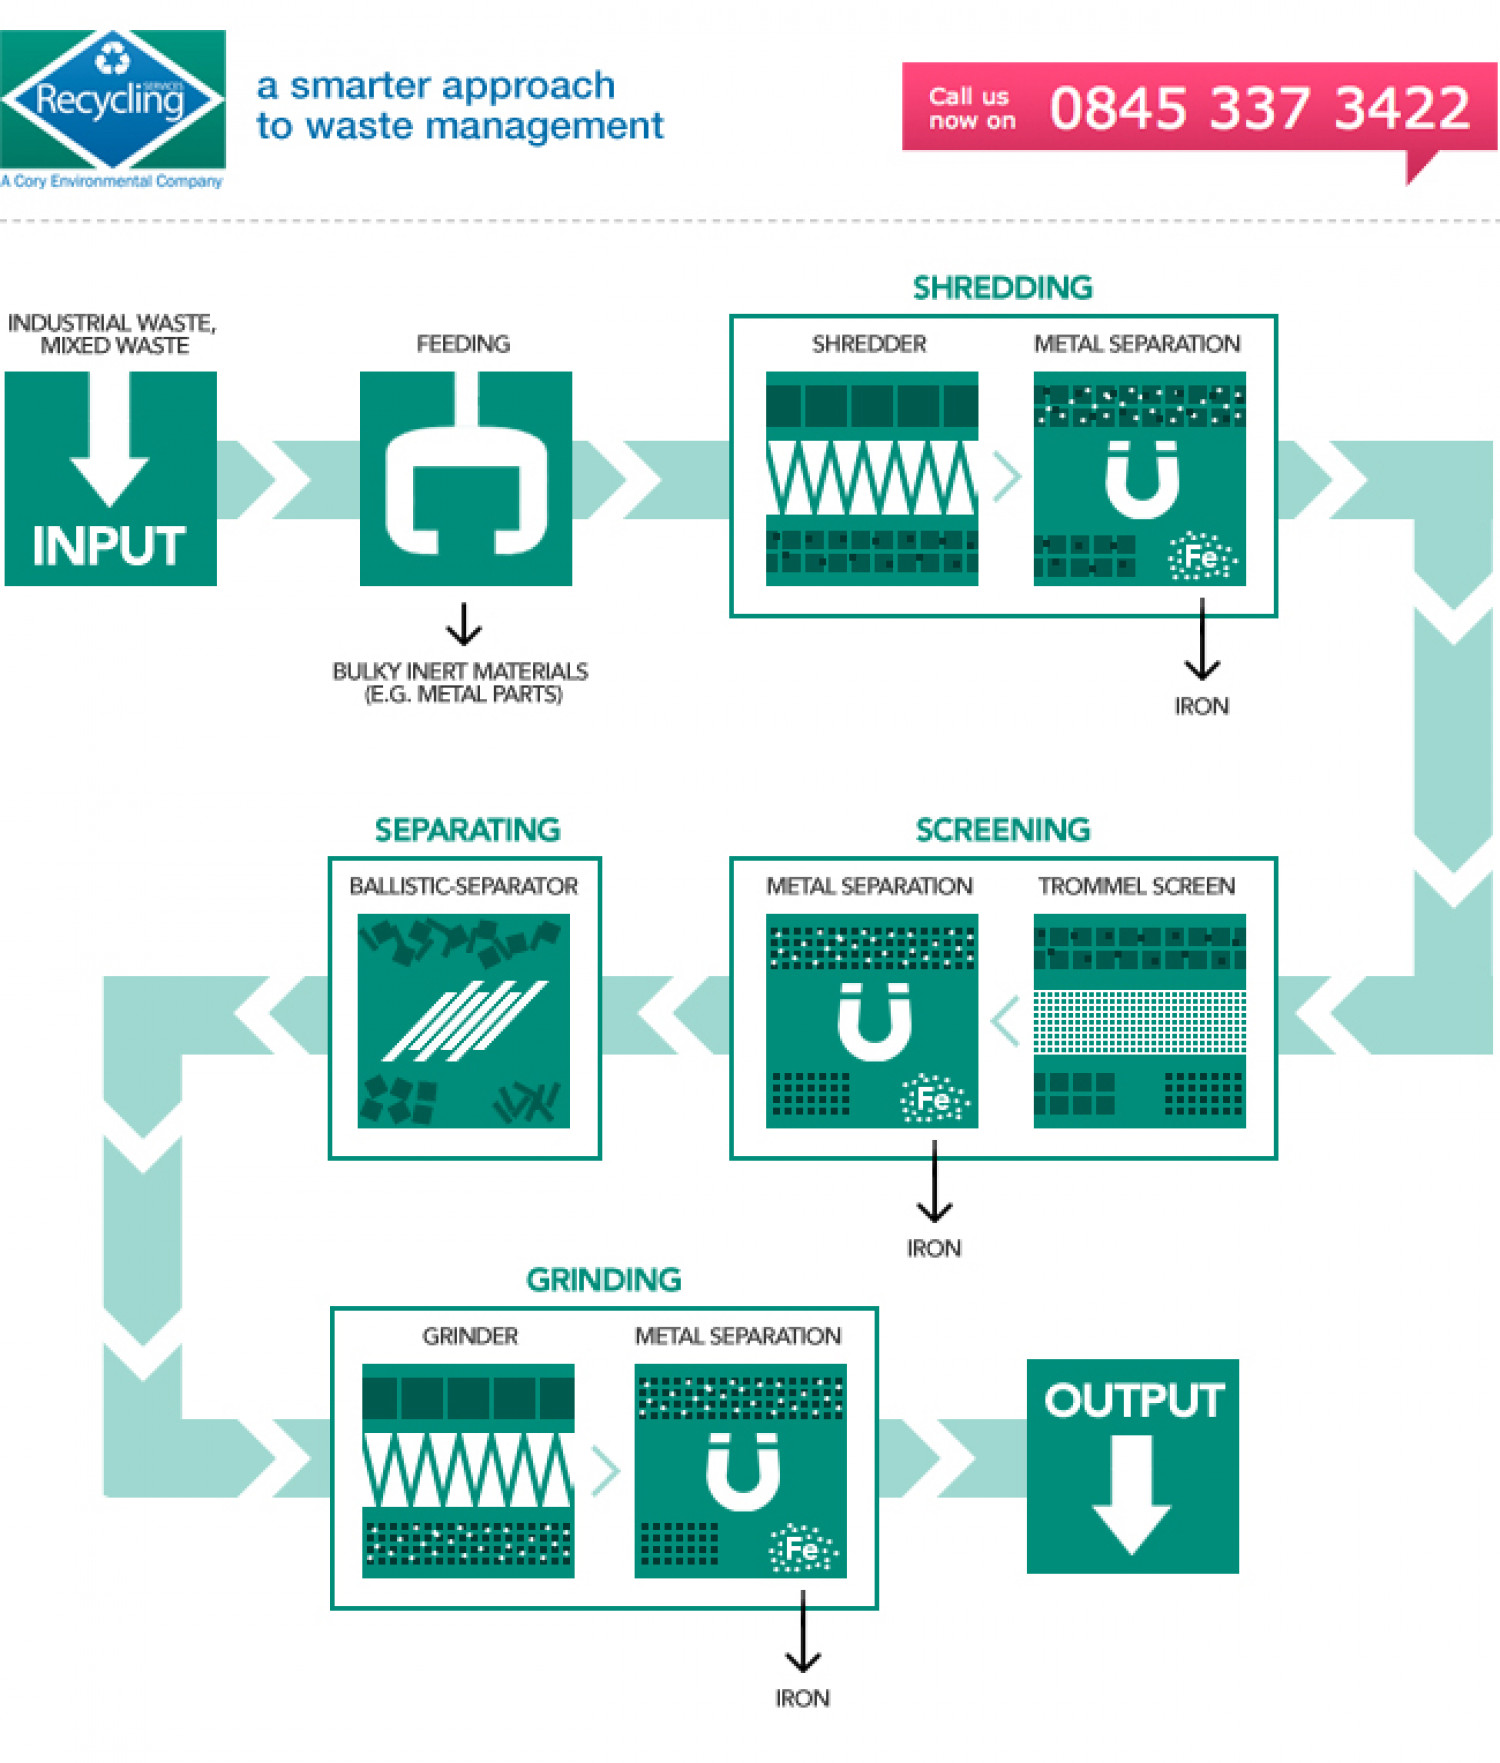 Recycling process - Recycling services UK Infographic